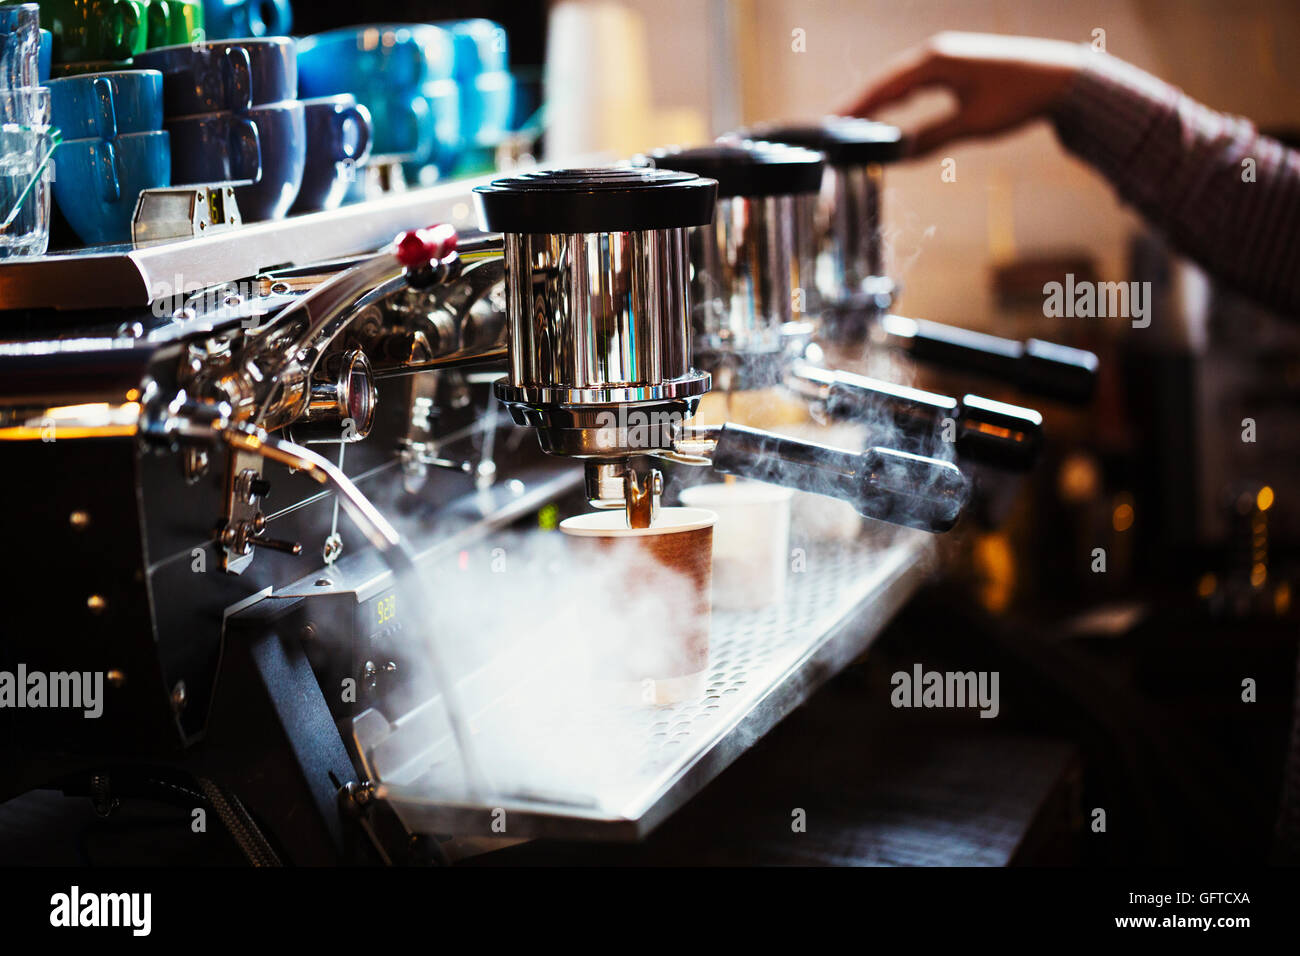 A person working at a large coffee machine with three percolating containers handles and a pipe sending out steam - Stock Image